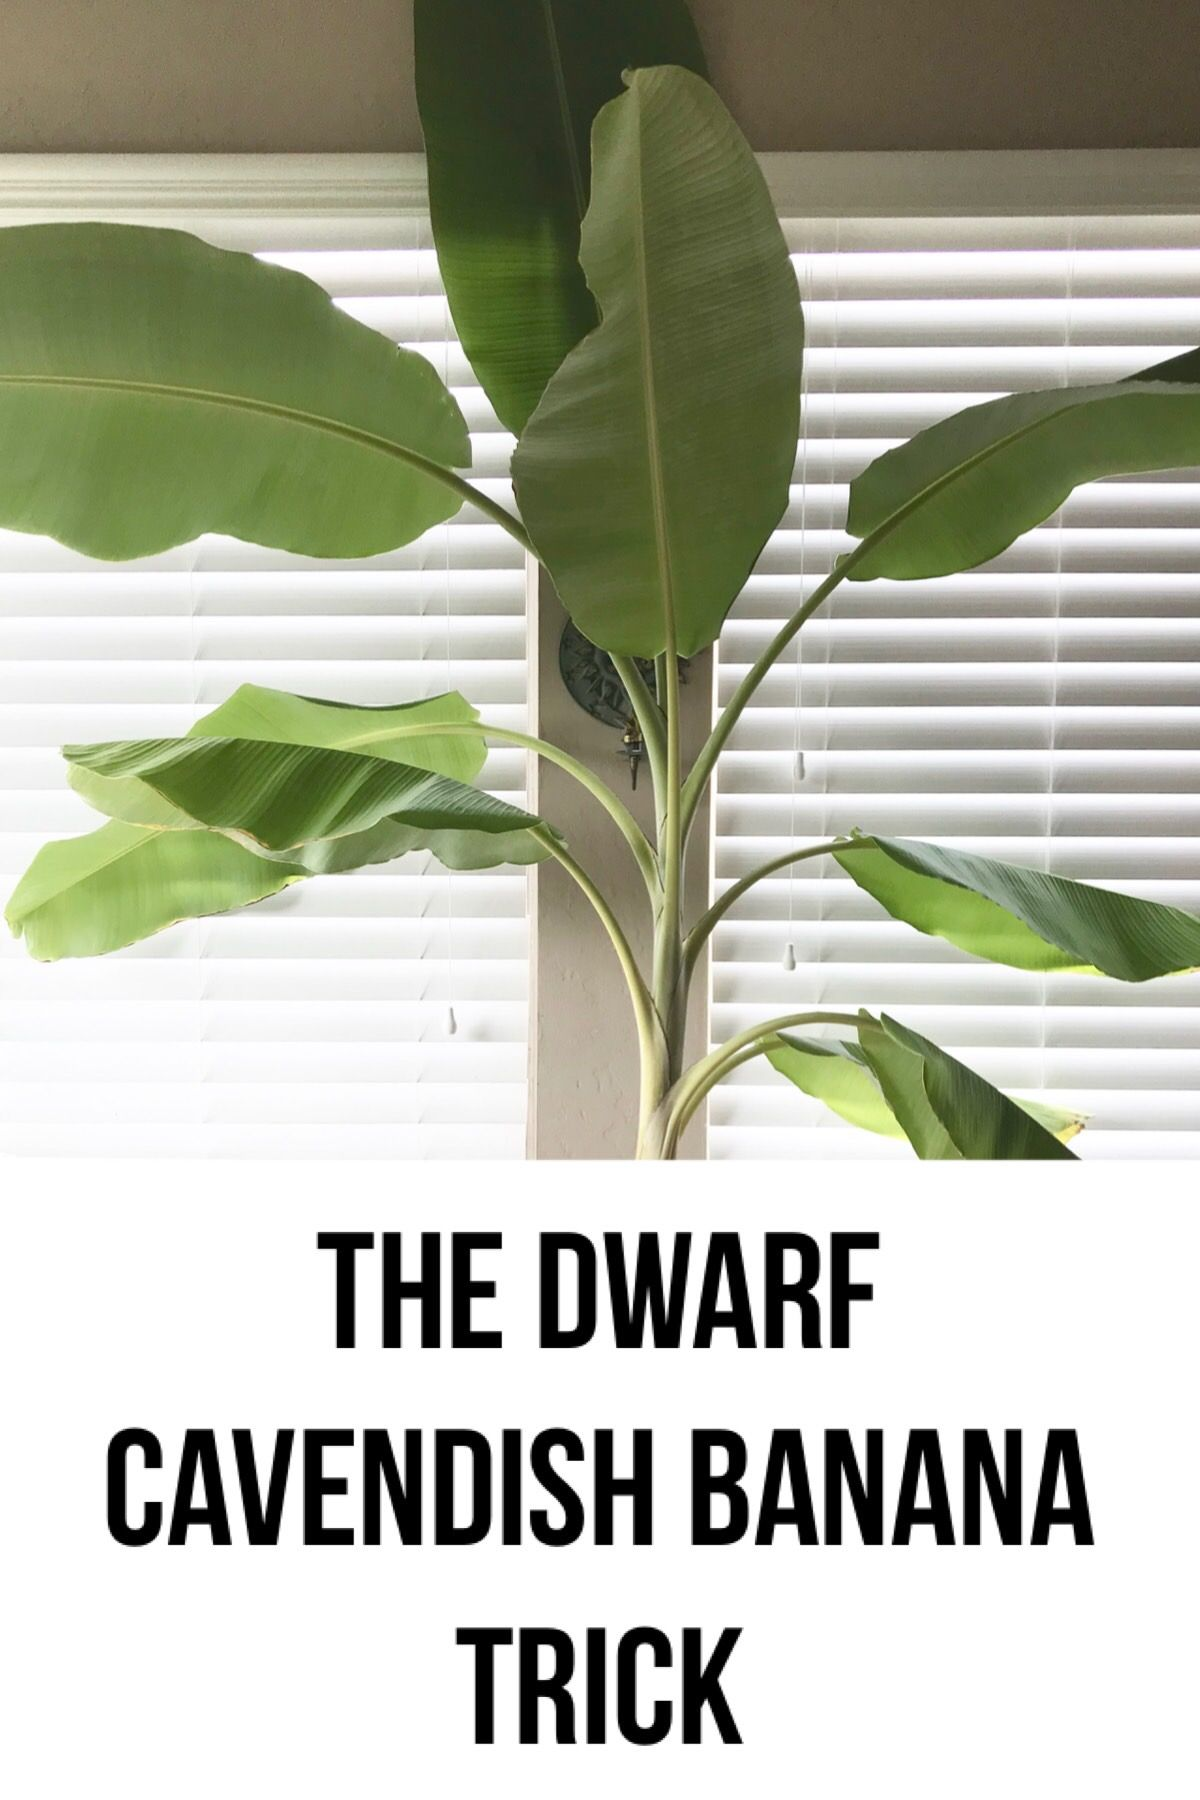 How To Care For Dwarf Cavendish Banana Plants Indoors Banana Plants Banana Plant Indoor Plant Care